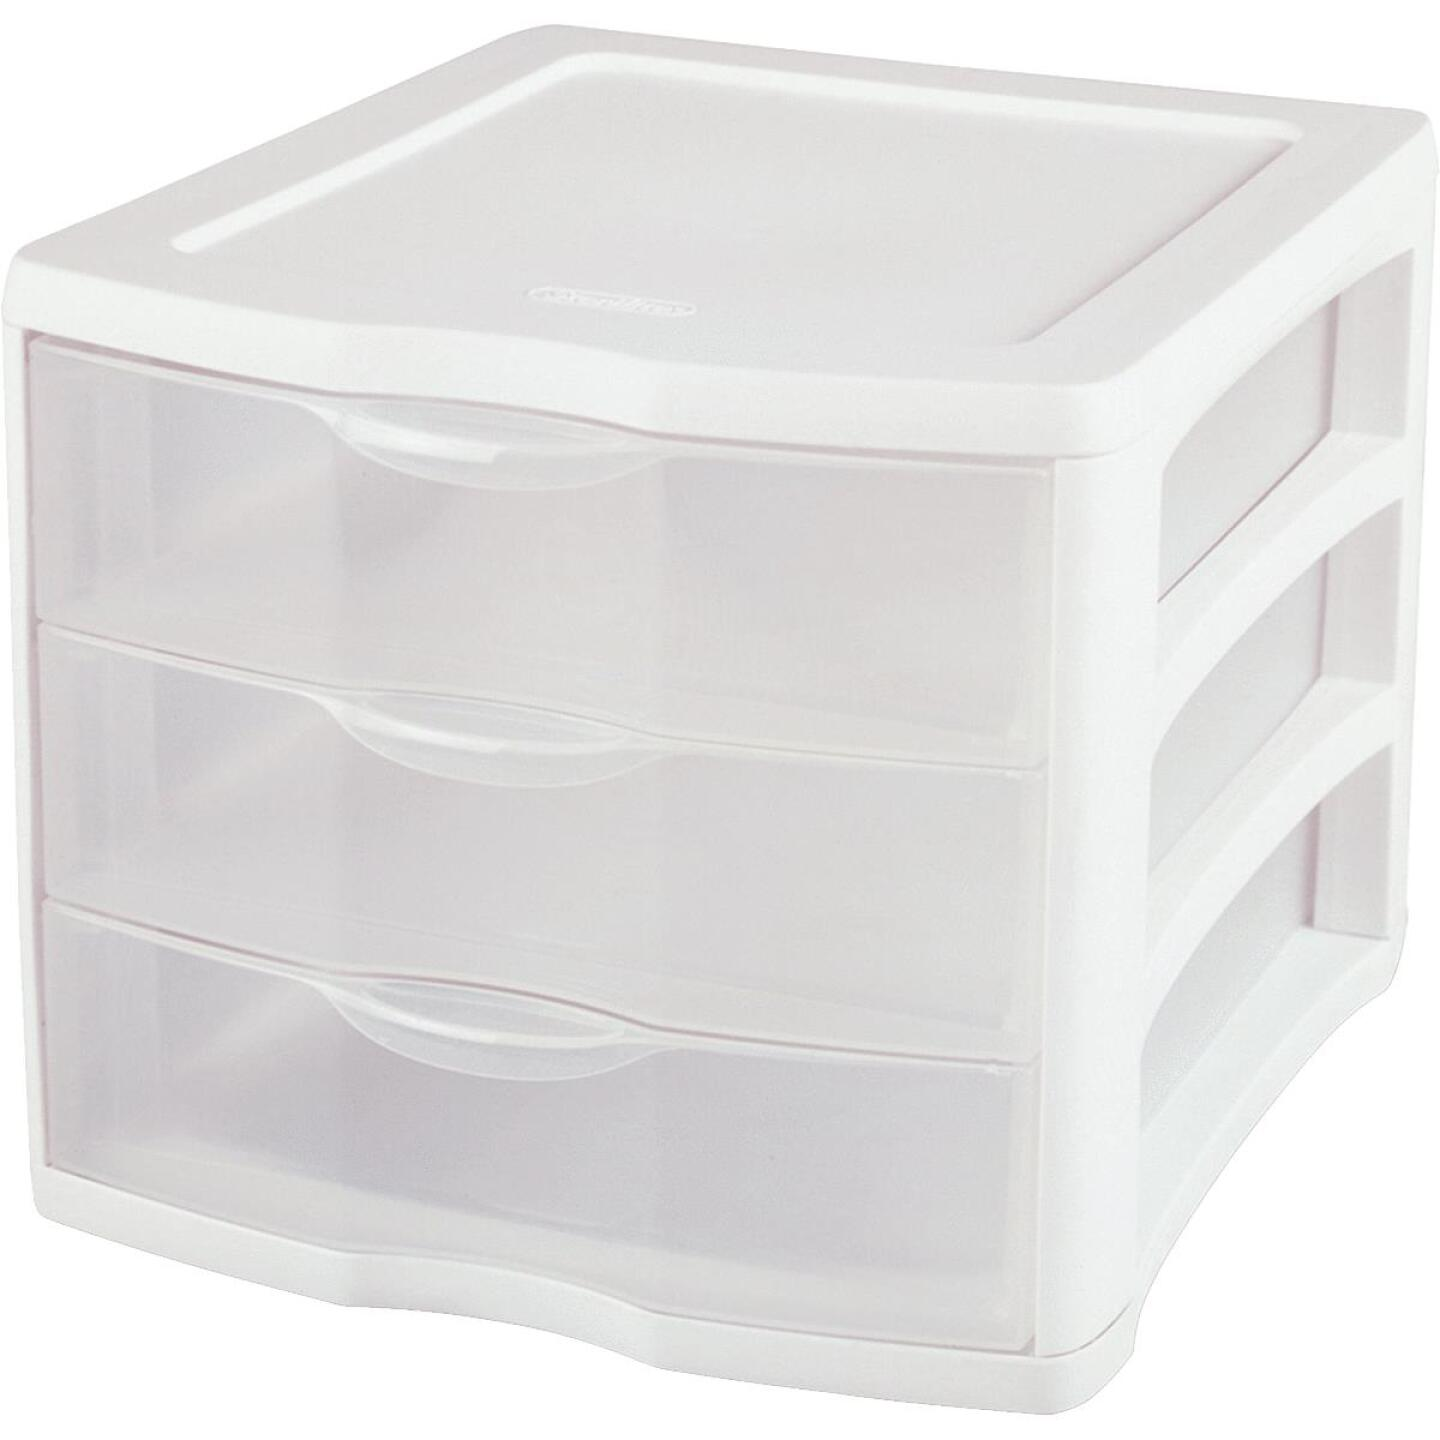 Sterilite ClearView 10 In. x 10 In. x 13.5 In. White 3-Drawer Storage Unit Image 1